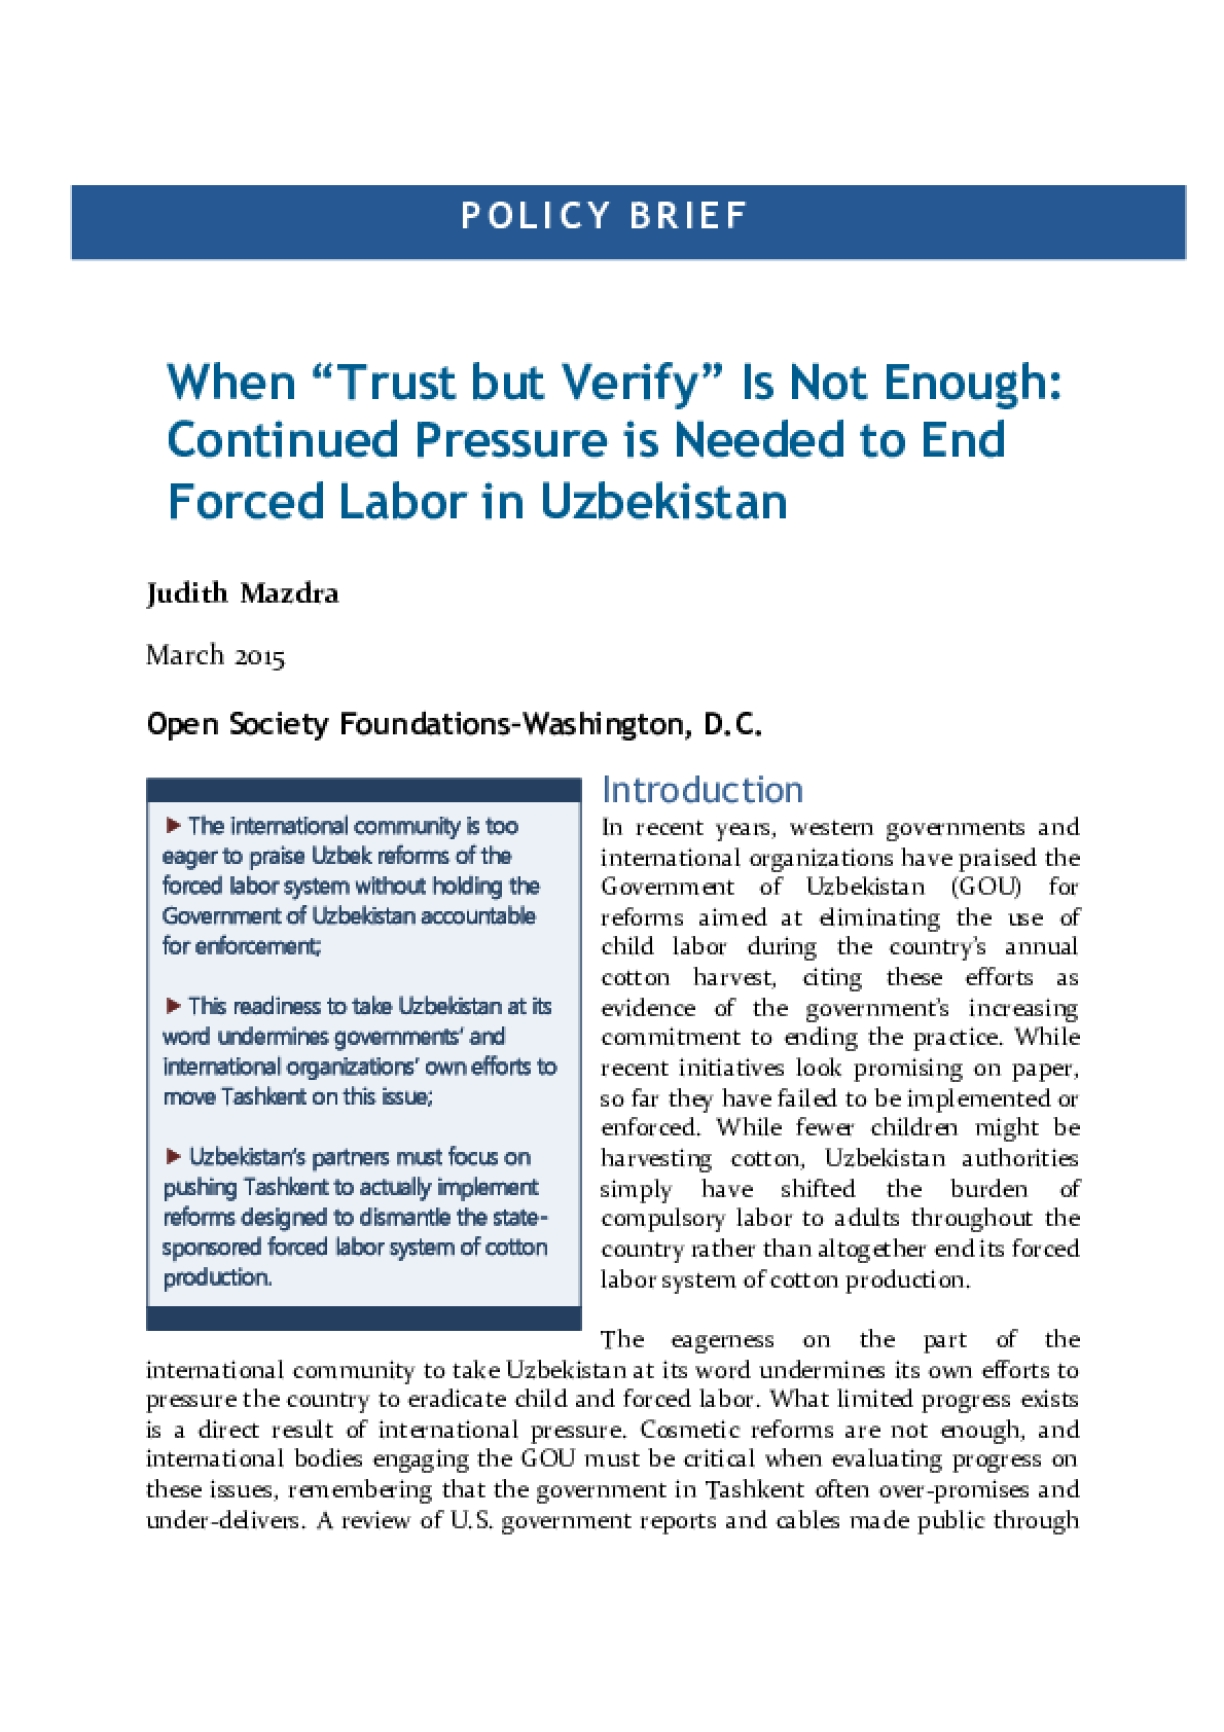 """When """"Trust but Verify"""" Is Not Enough: Continued Pressure Is Needed to End Forced Labor in Uzbekistan"""